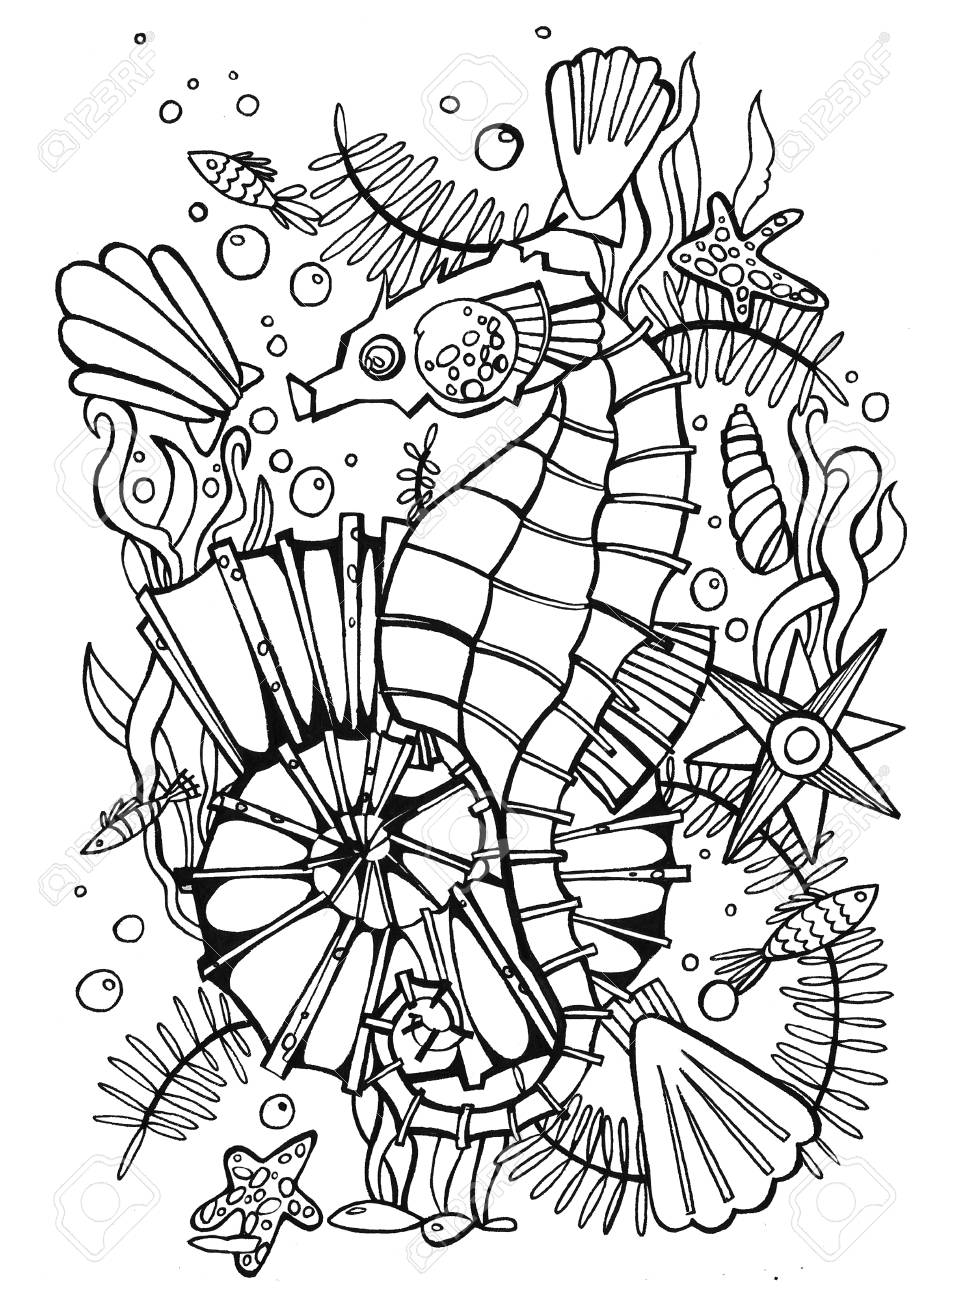 Hand Drawn Coloring Page Sea HorsePicture For Book Very Interesting And Relaxing